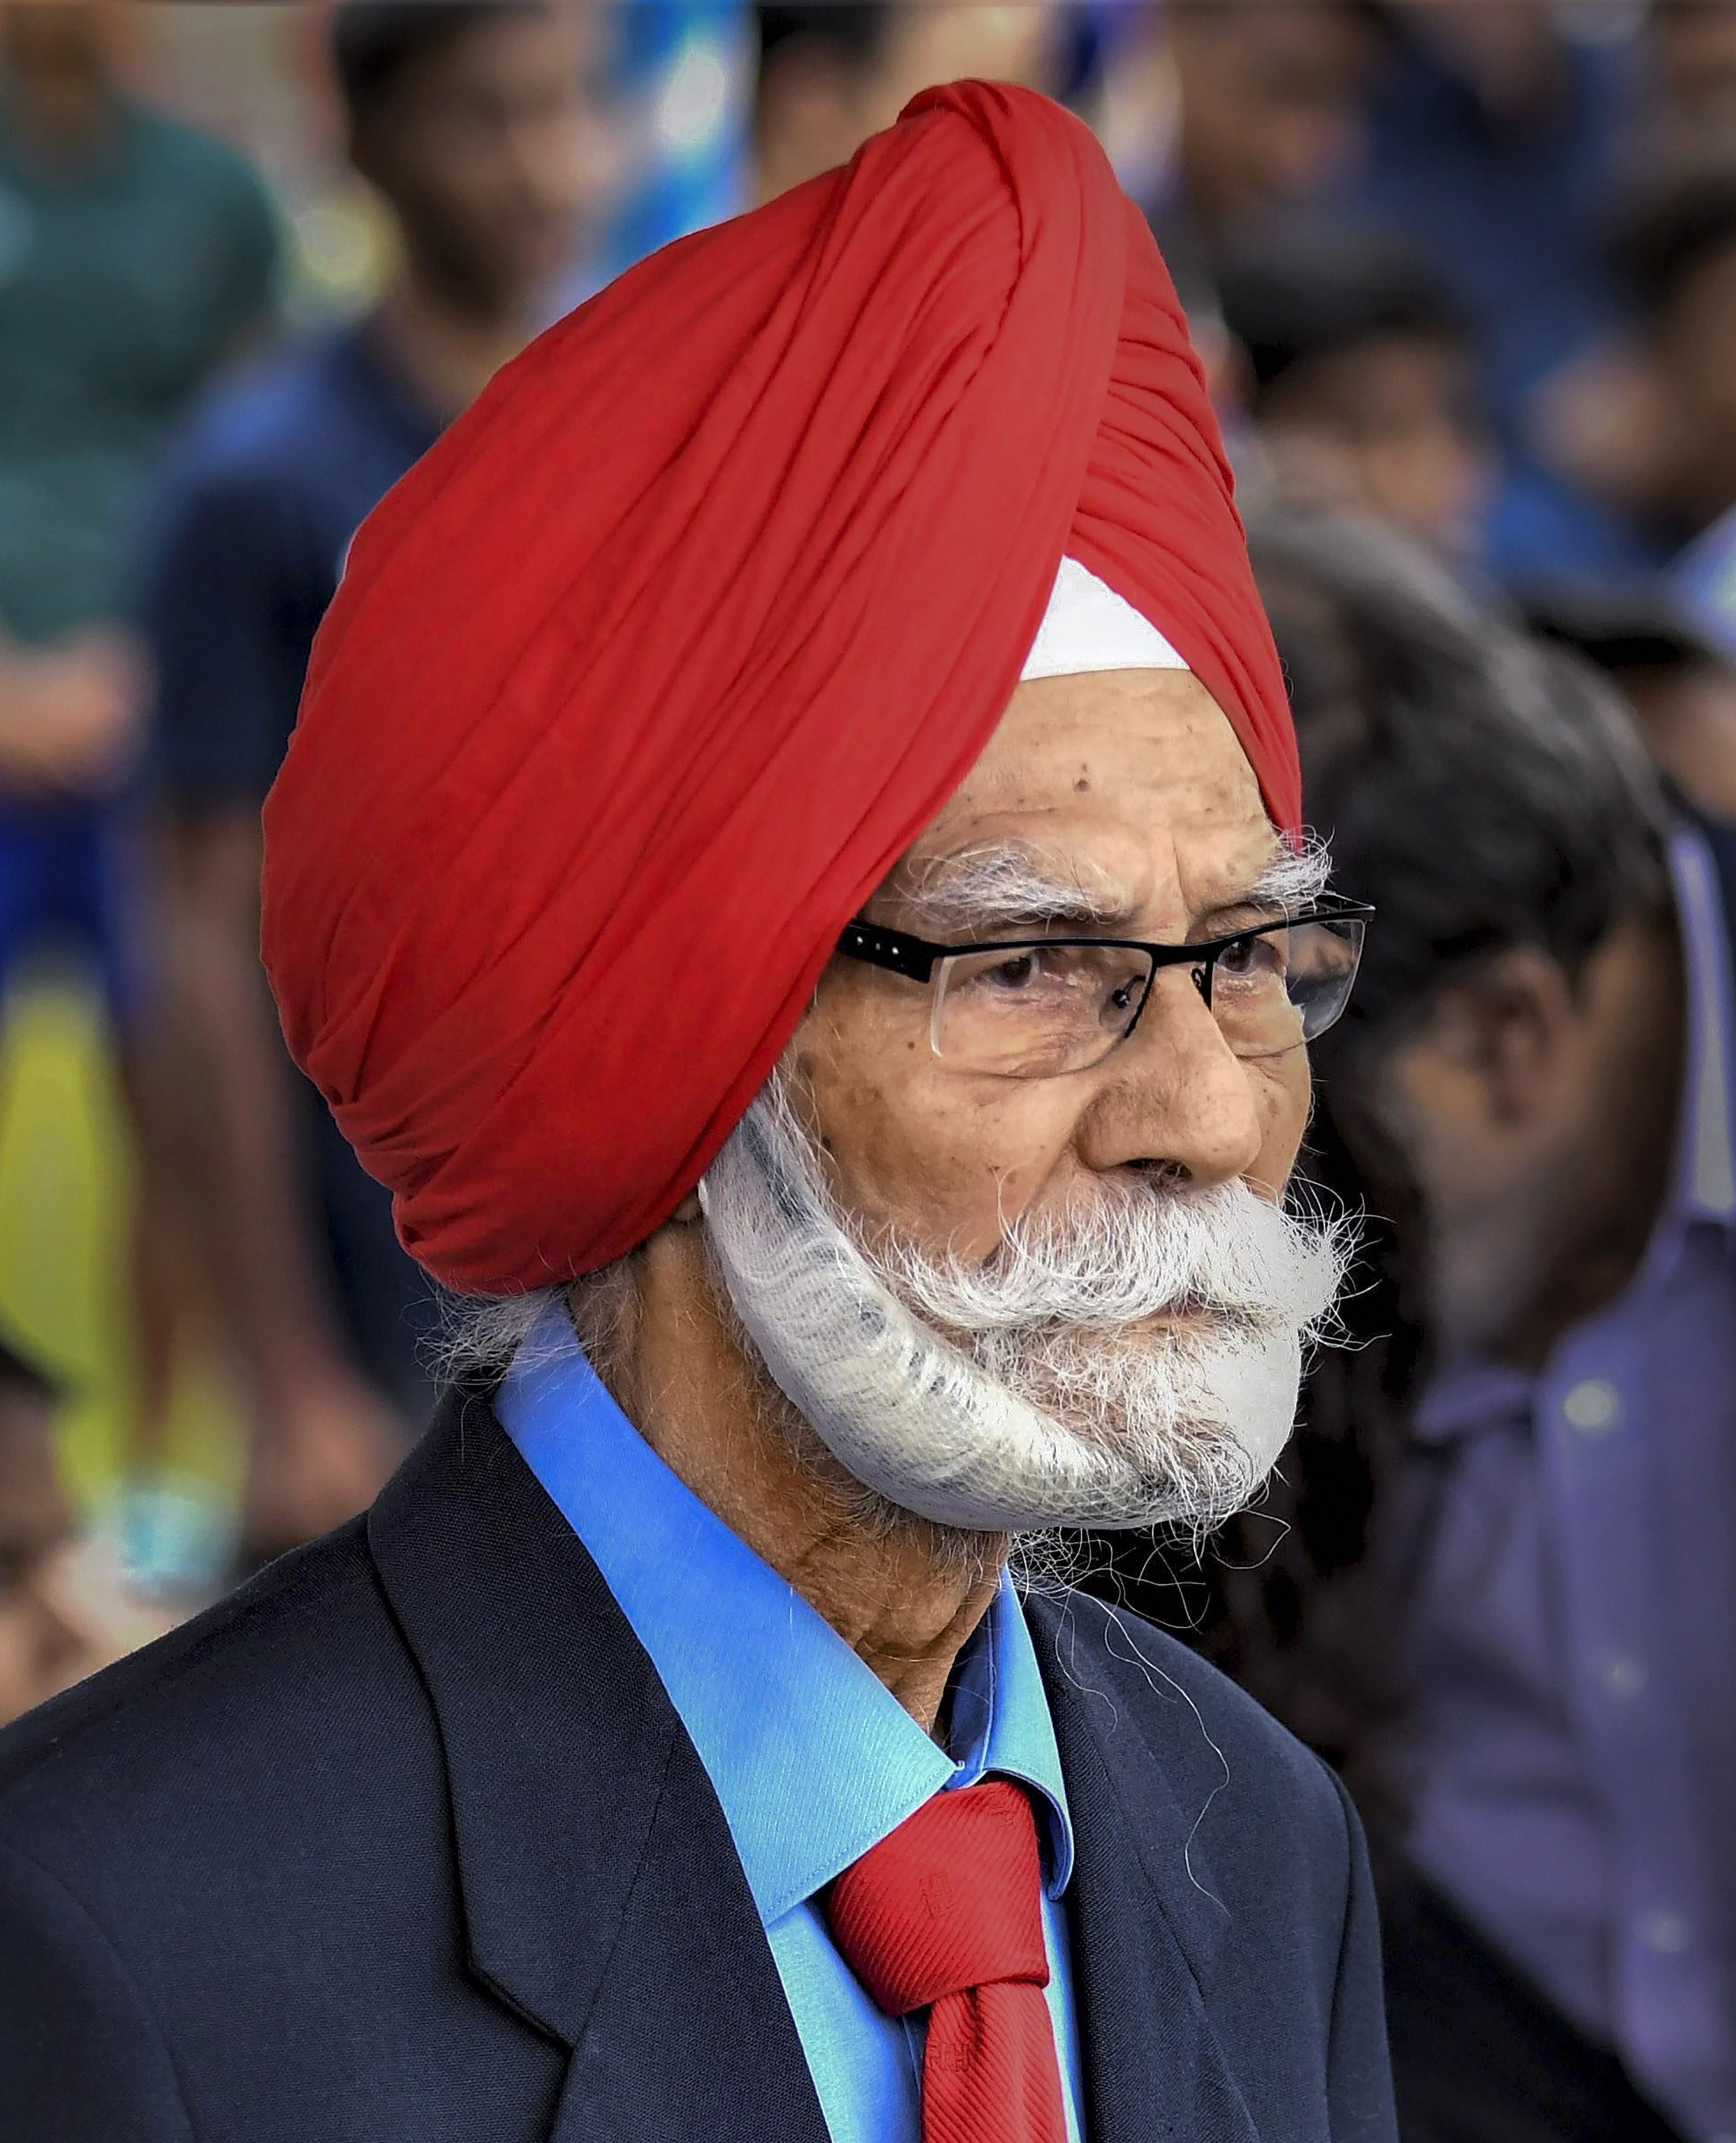 In this Wednesday, August 15, 2018 file photo, three-time Olympic gold medalist hockey veteran Balbir Singh Sr. at the launch of the Inspire Institute of Sport, in Vijayanagara, Bellary. Singh, died on Monday, May 25, 2020, after battling multiple health issues.